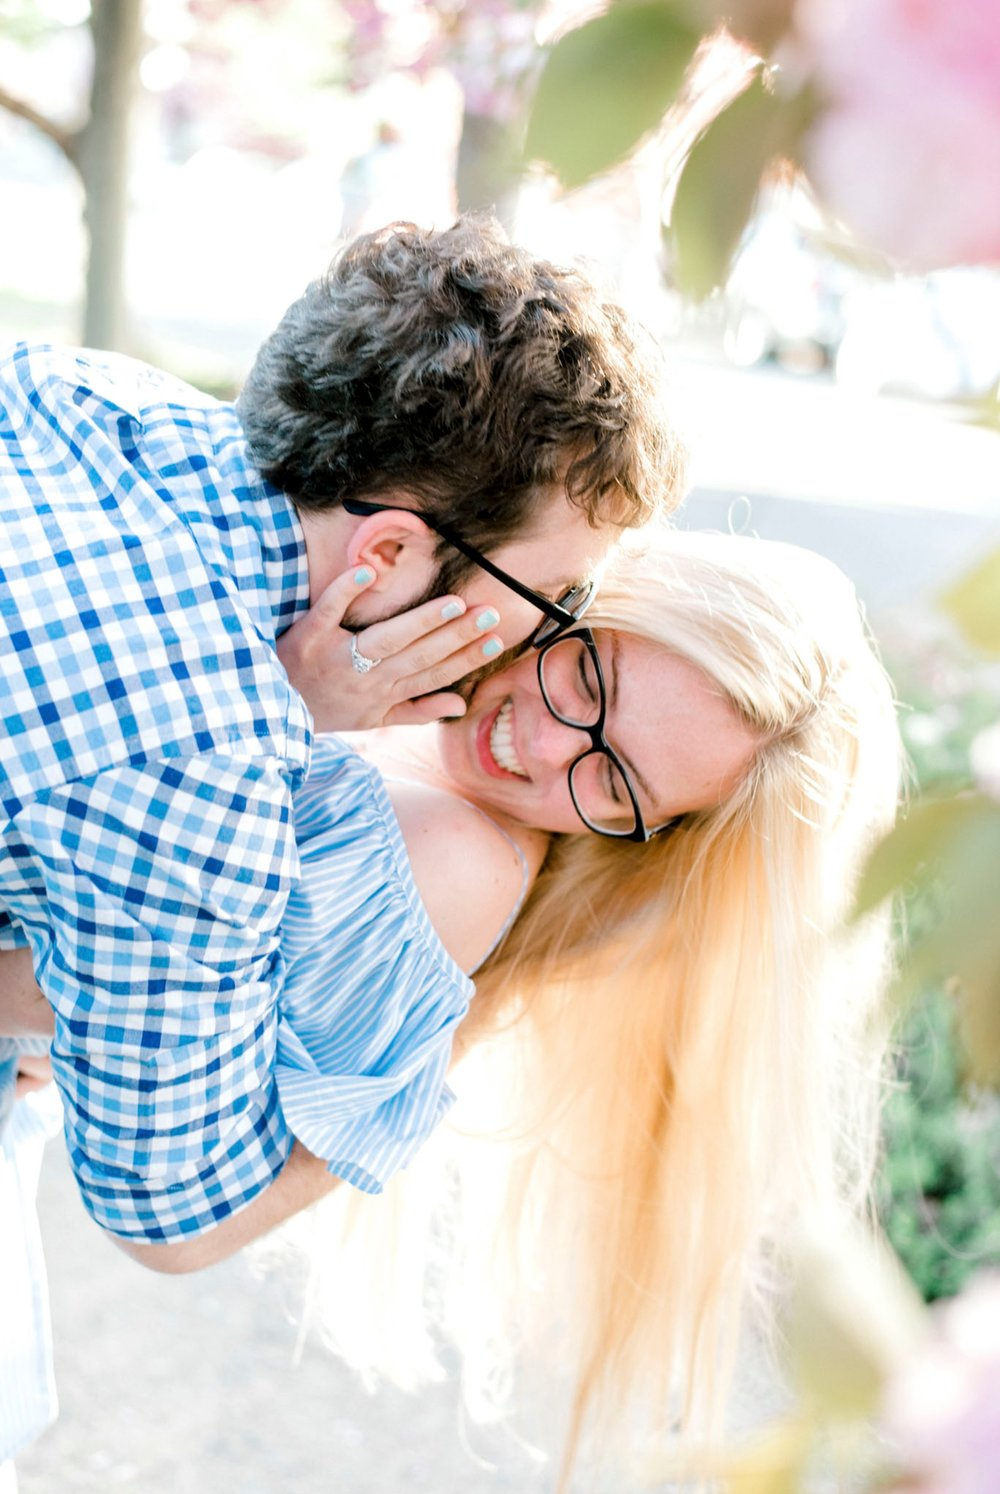 LaunceTarah_VirginiaWeddingPhotographer_EngagementSession_LynchburgVA_DowntownLynchburg_SpringEngagement 10.jpg